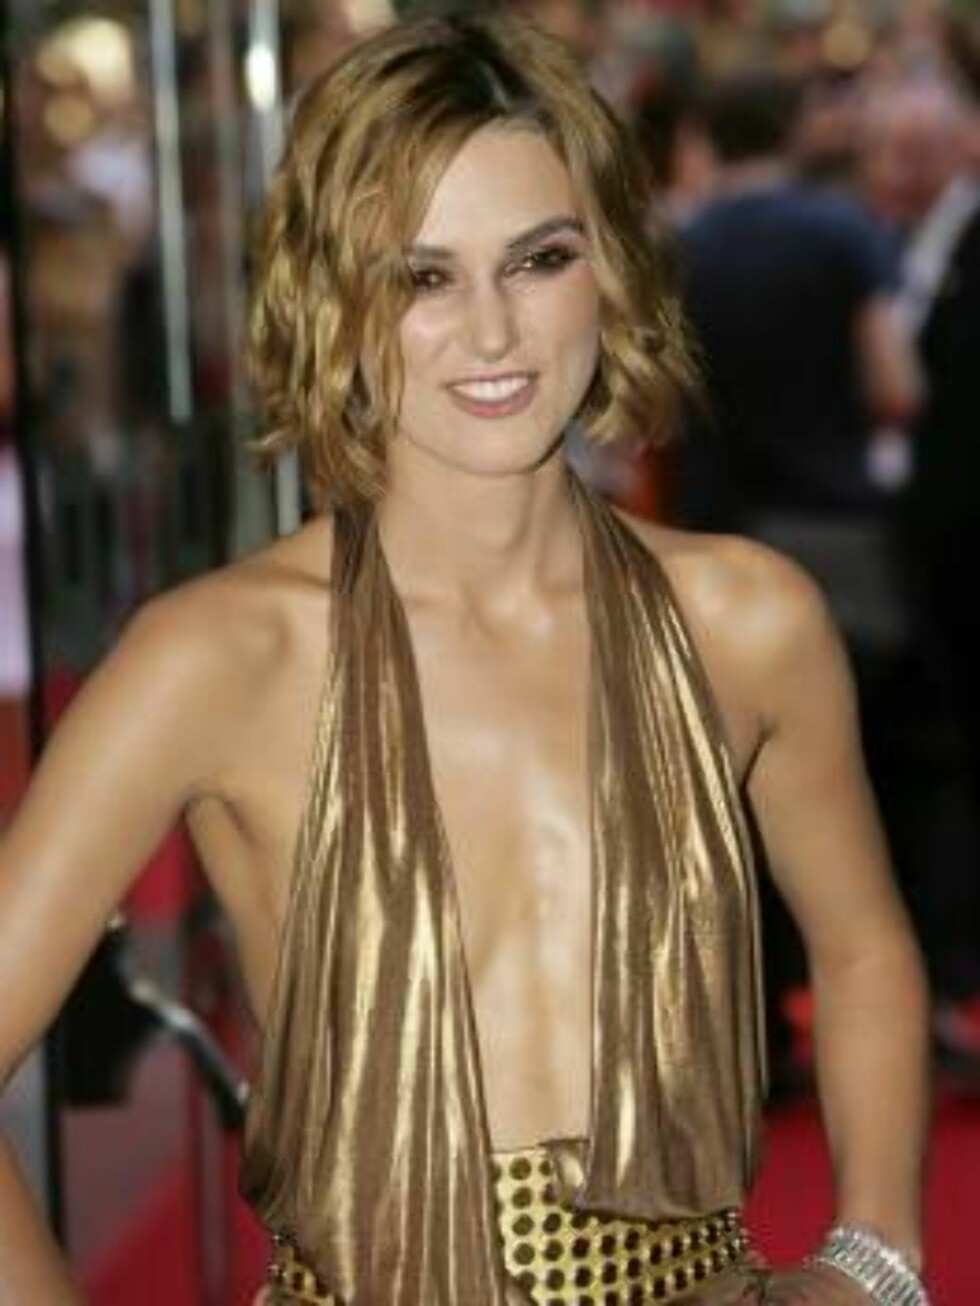 """LONDON - JULY 03:  (UK TABLOID NEWSPAPERS OUT)  Actress Keira Knightley arrives at the European Premiere of """"Pirates Of The Caribbean: Dead Man's Chest"""" at Odeon Leicester Square on July 3, 2006 in London, England.  (Photo by Dave Hogan/Getty Images) *** Foto: All Over Press"""